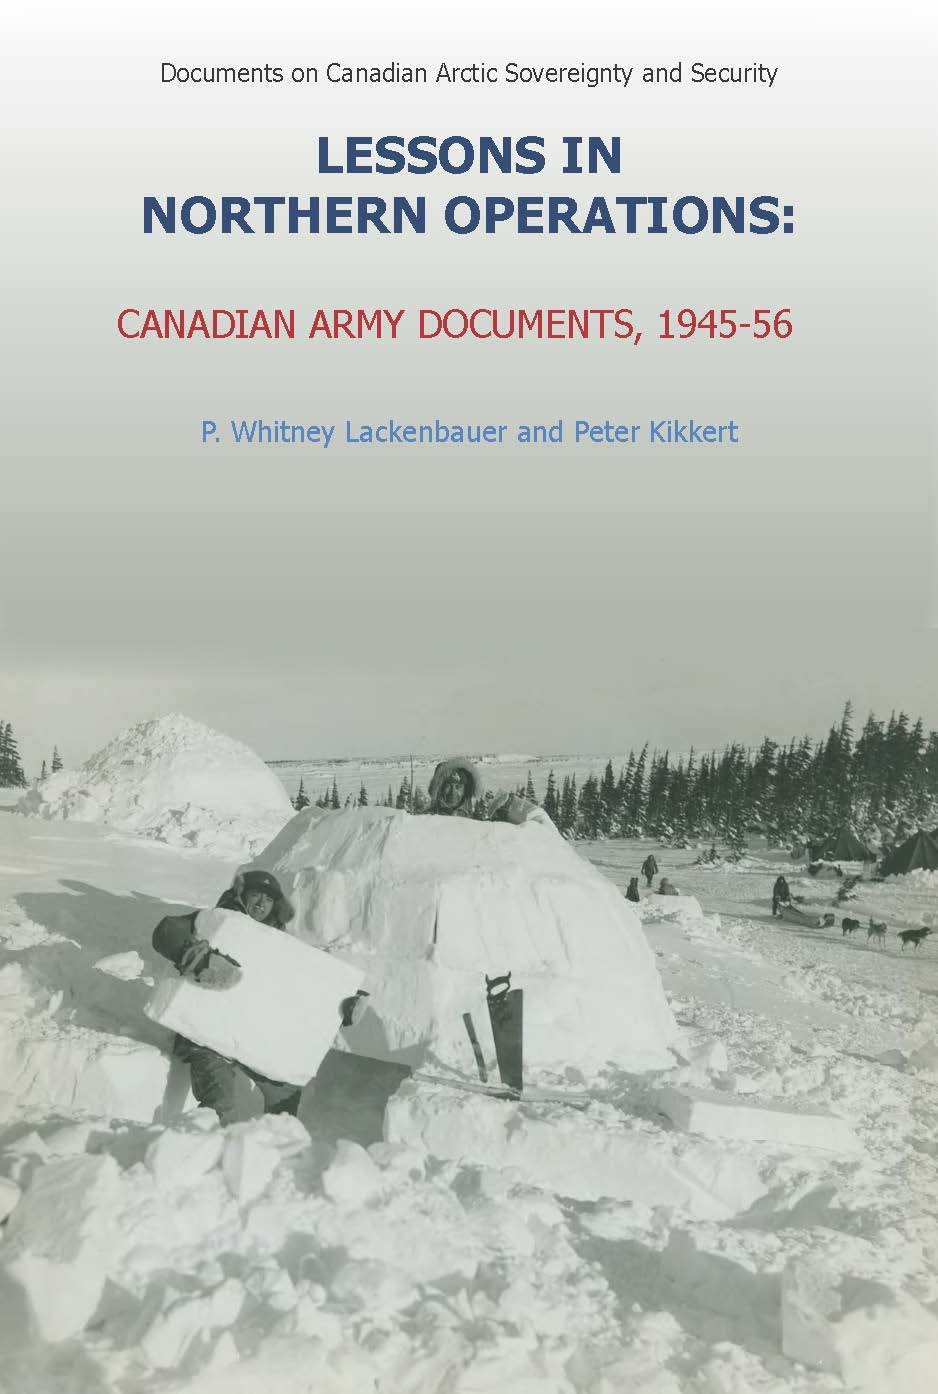 Lessons in Arctic Operations: The Canadian Army Experience, 1945-1956